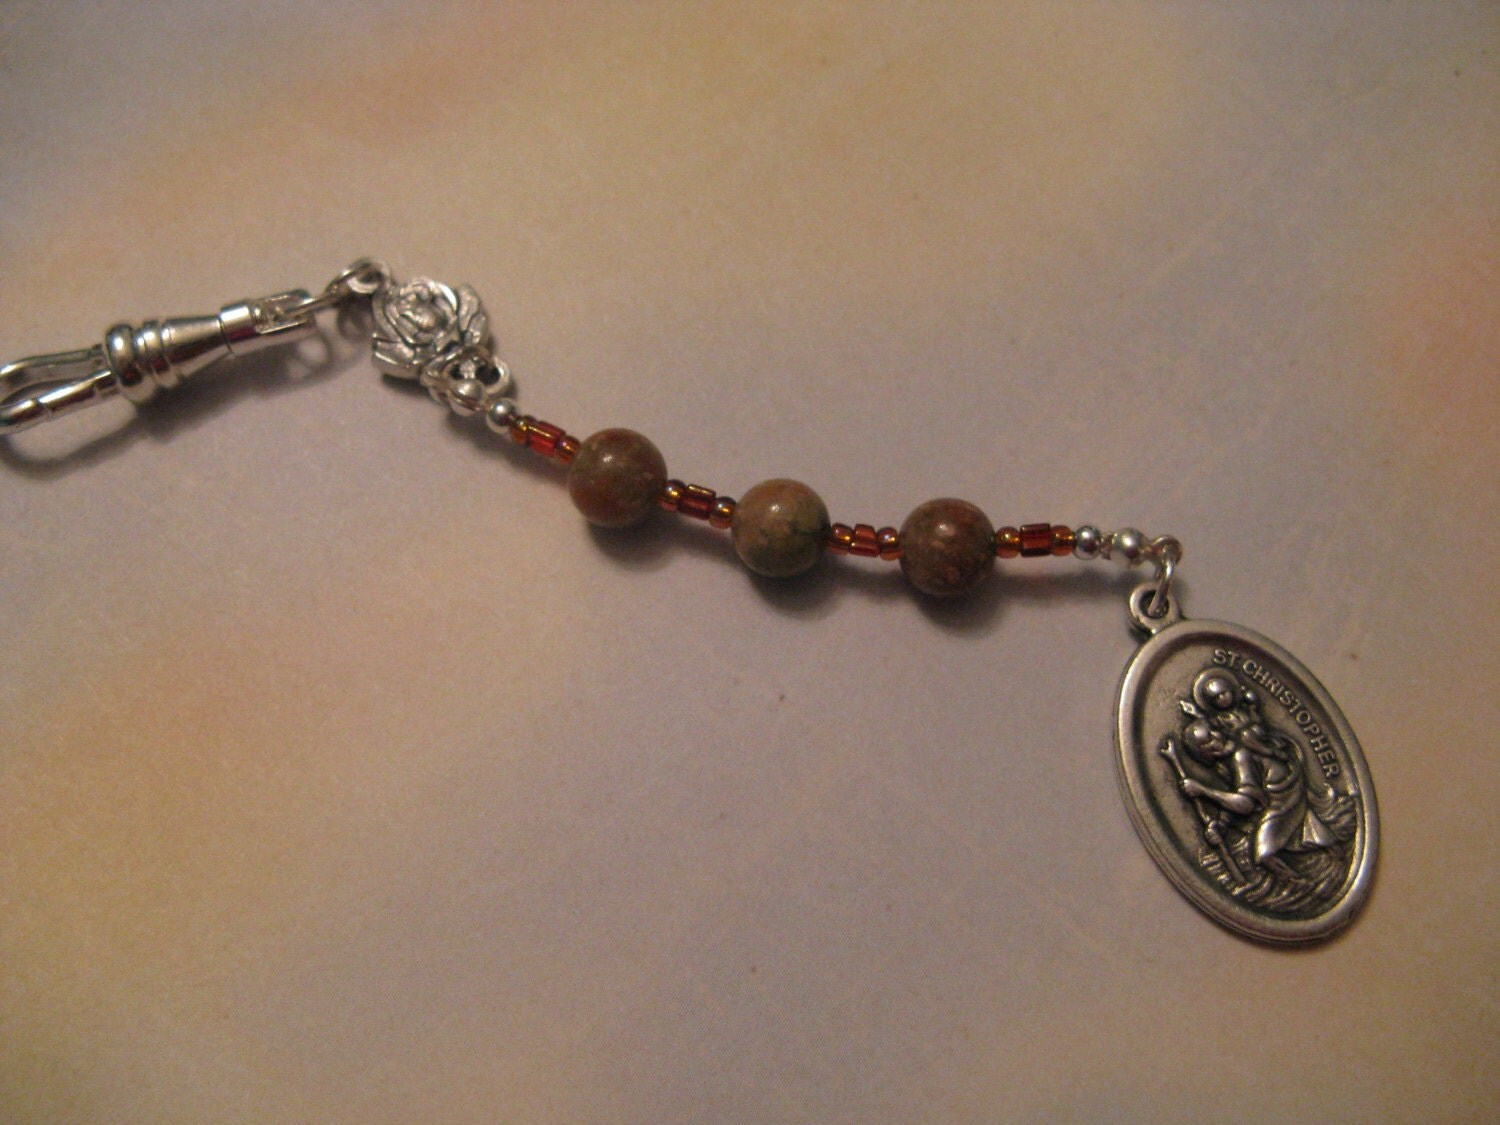 Autumn Jasper One Minute Traffic Chaplet